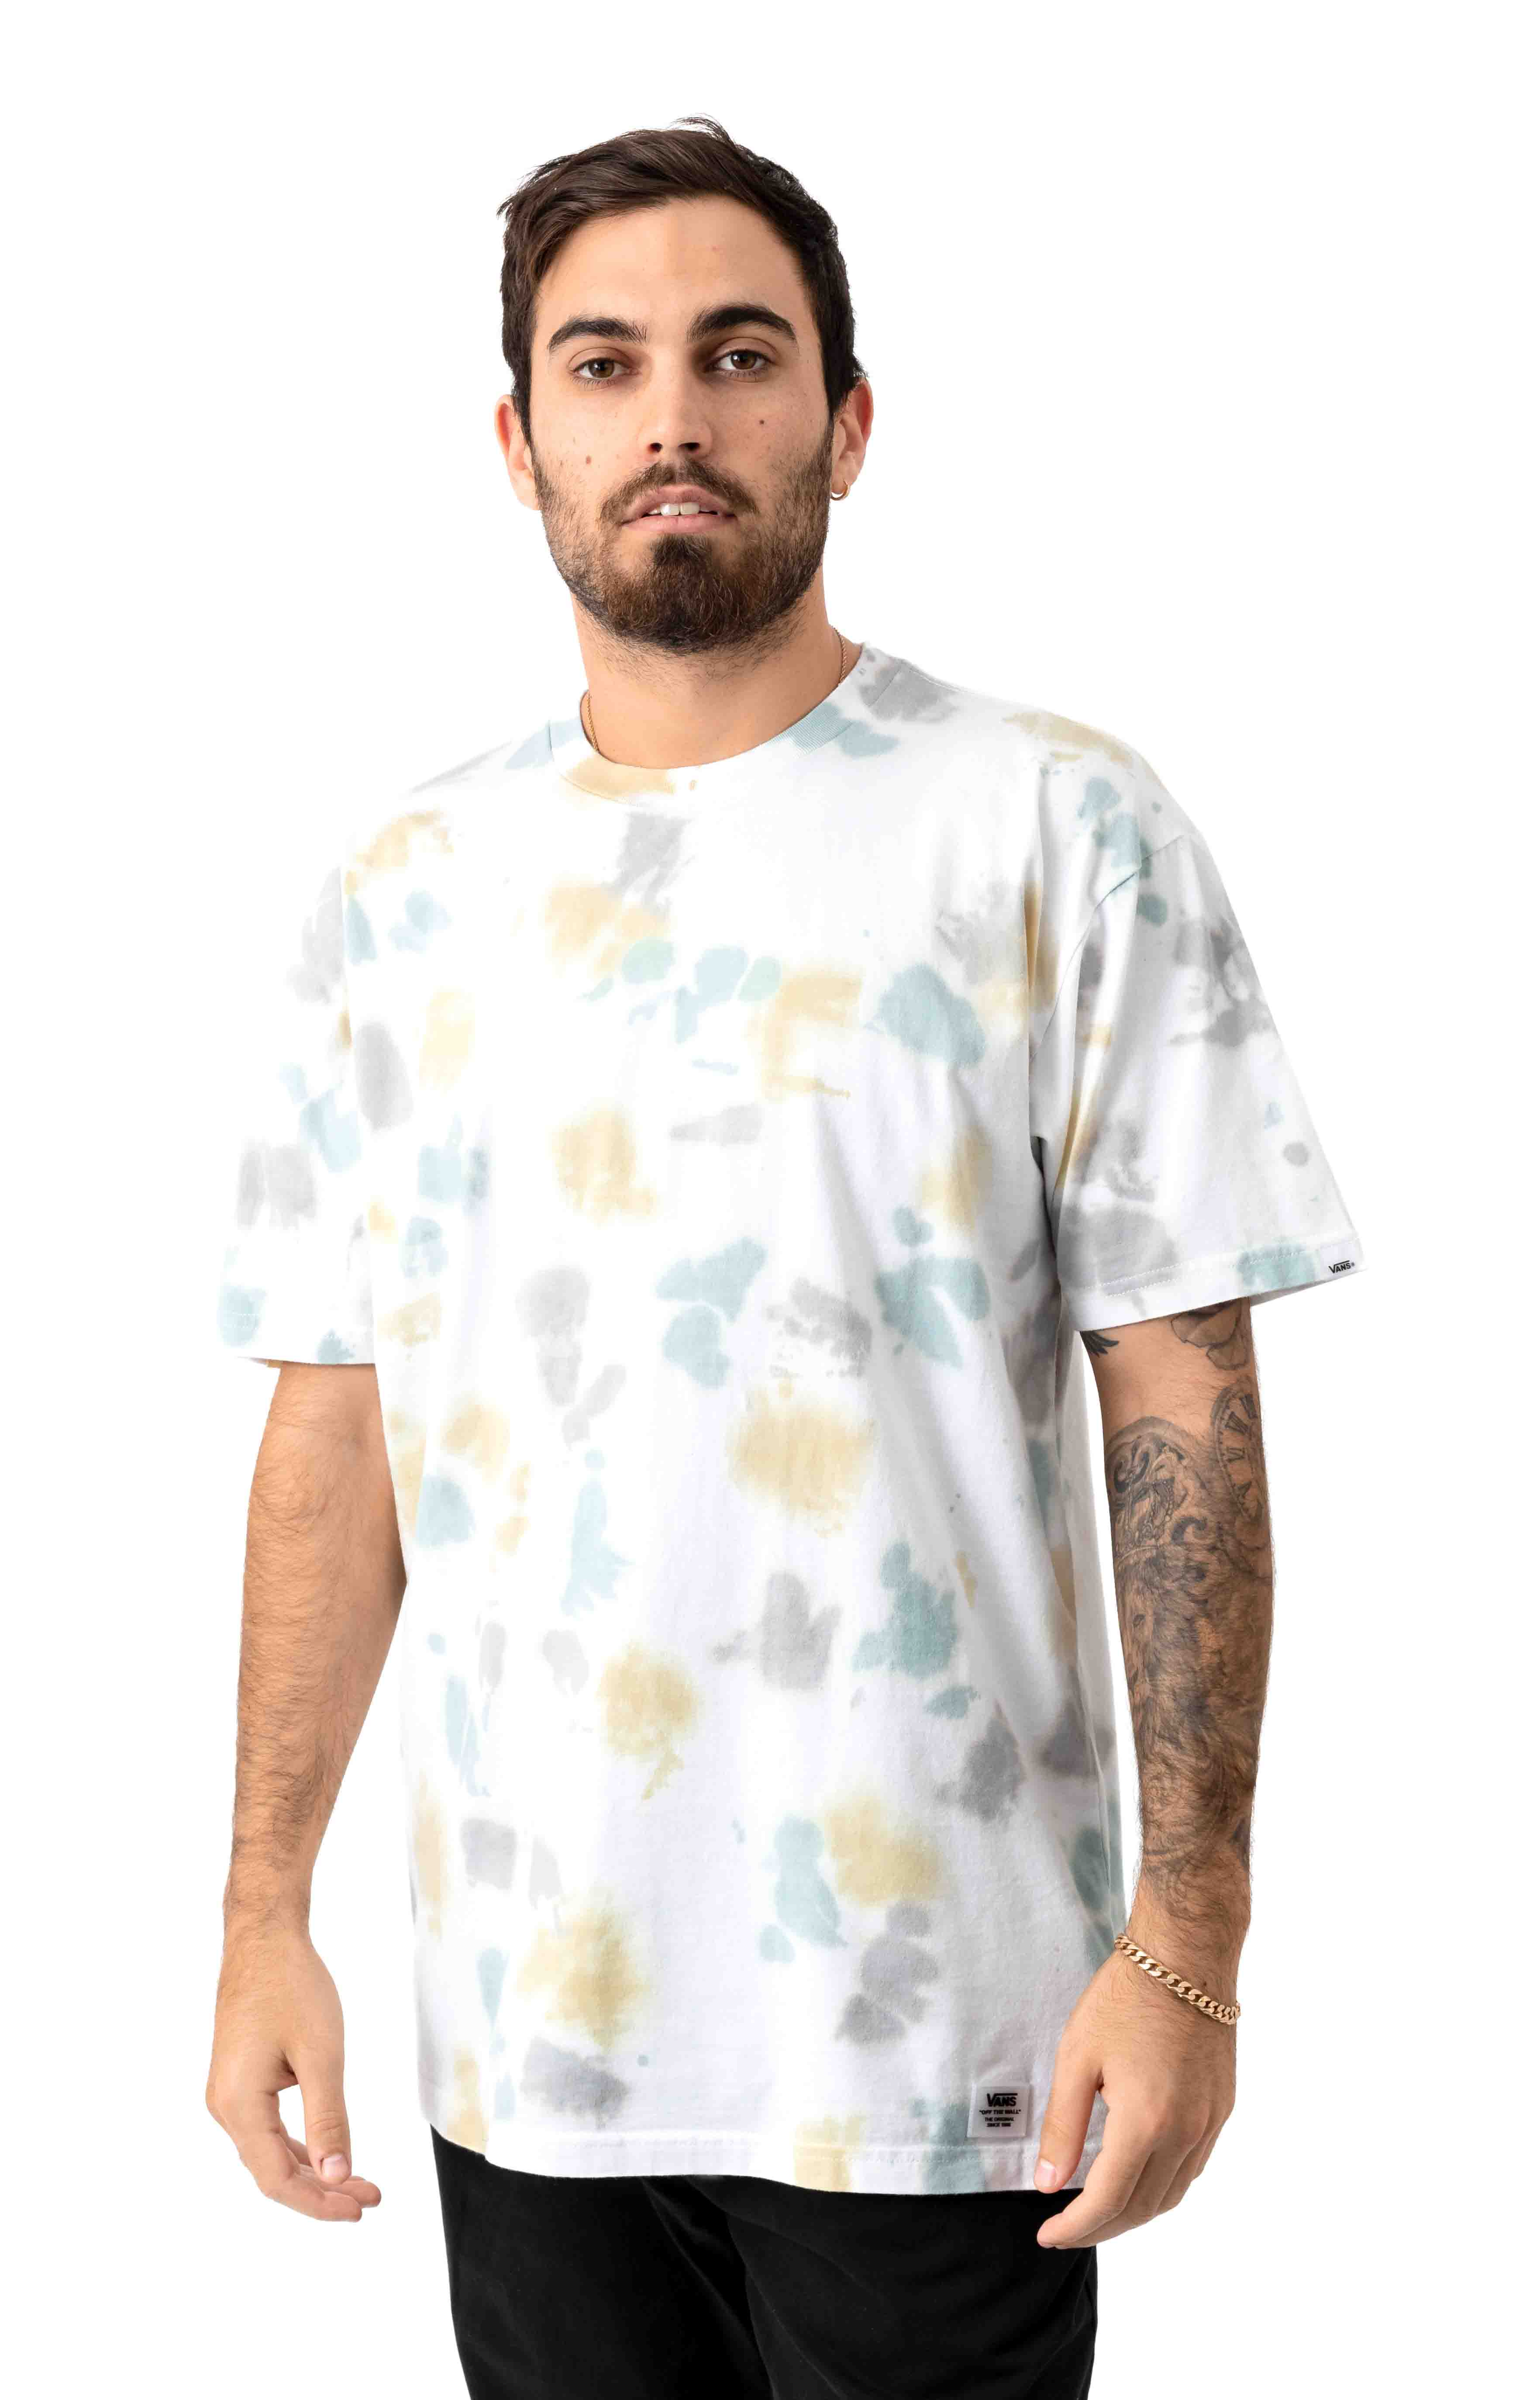 Elevated T-Shirt - Tie-Dye 2